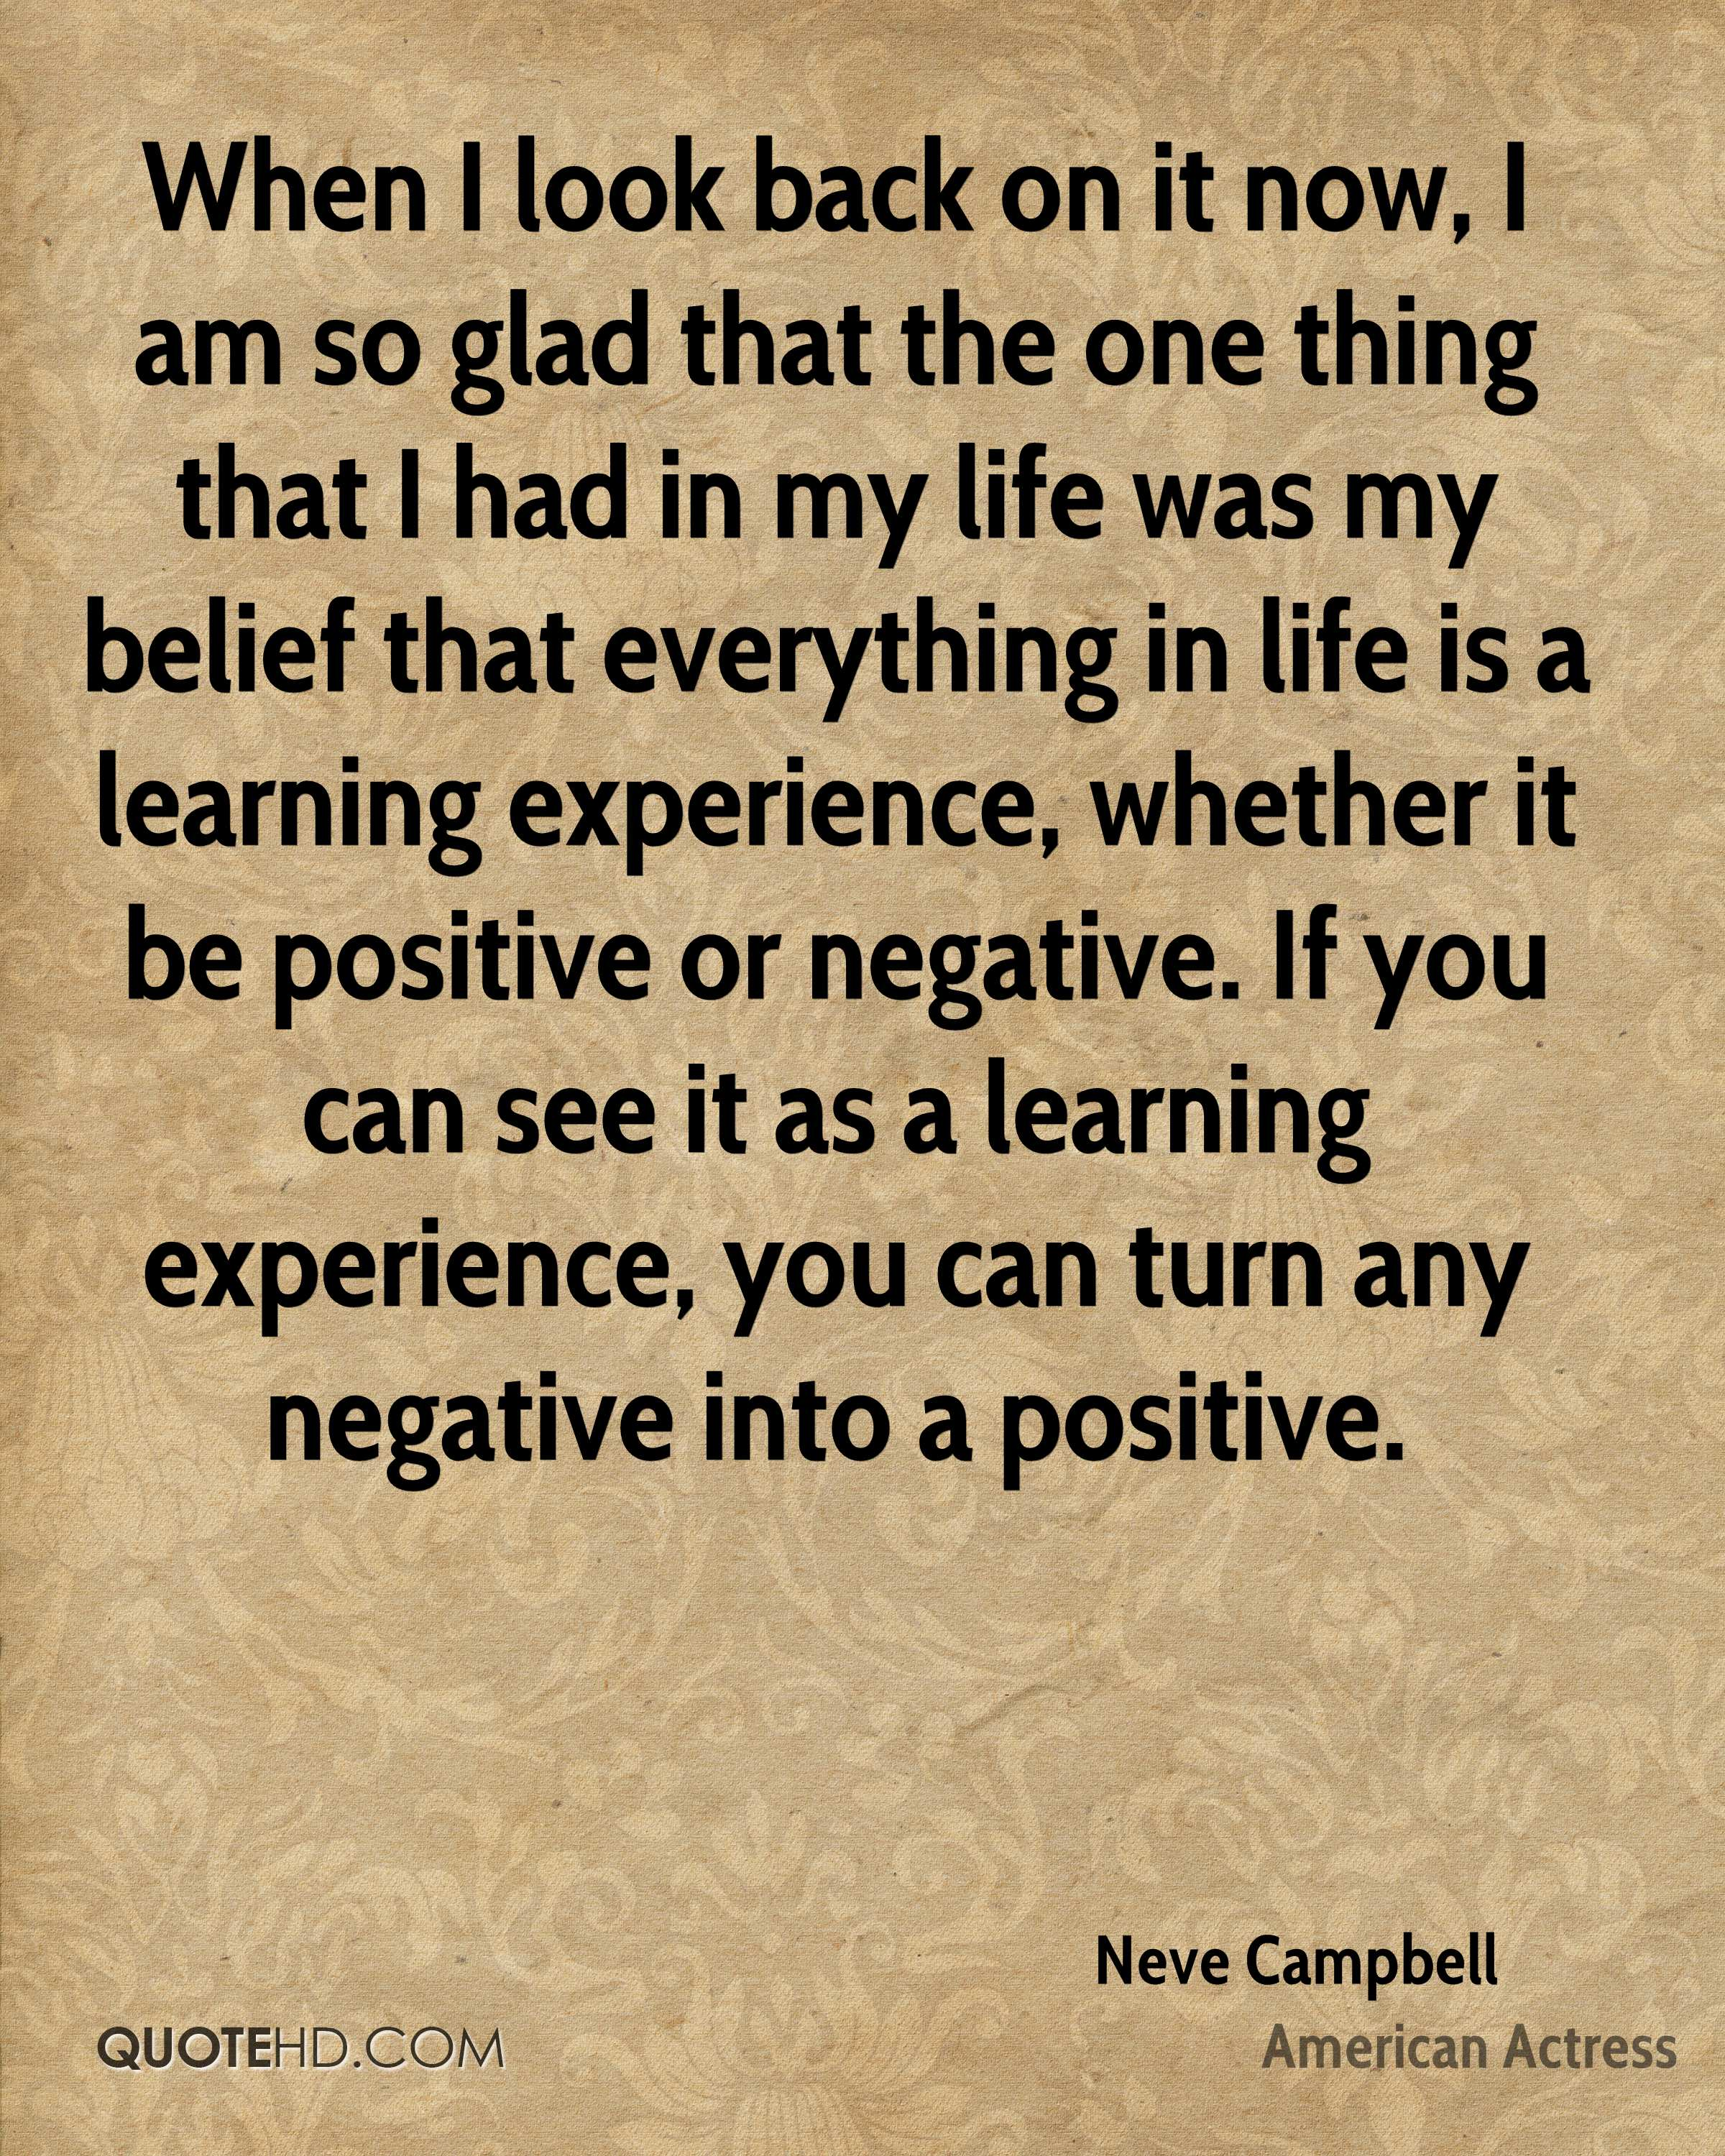 When I look back on it now, I am so glad that the one thing that I had in my life was my belief that everything in life is a learning experience, whether it be positive or negative. If you can see it as a learning experience, you can turn any negative into a positive.